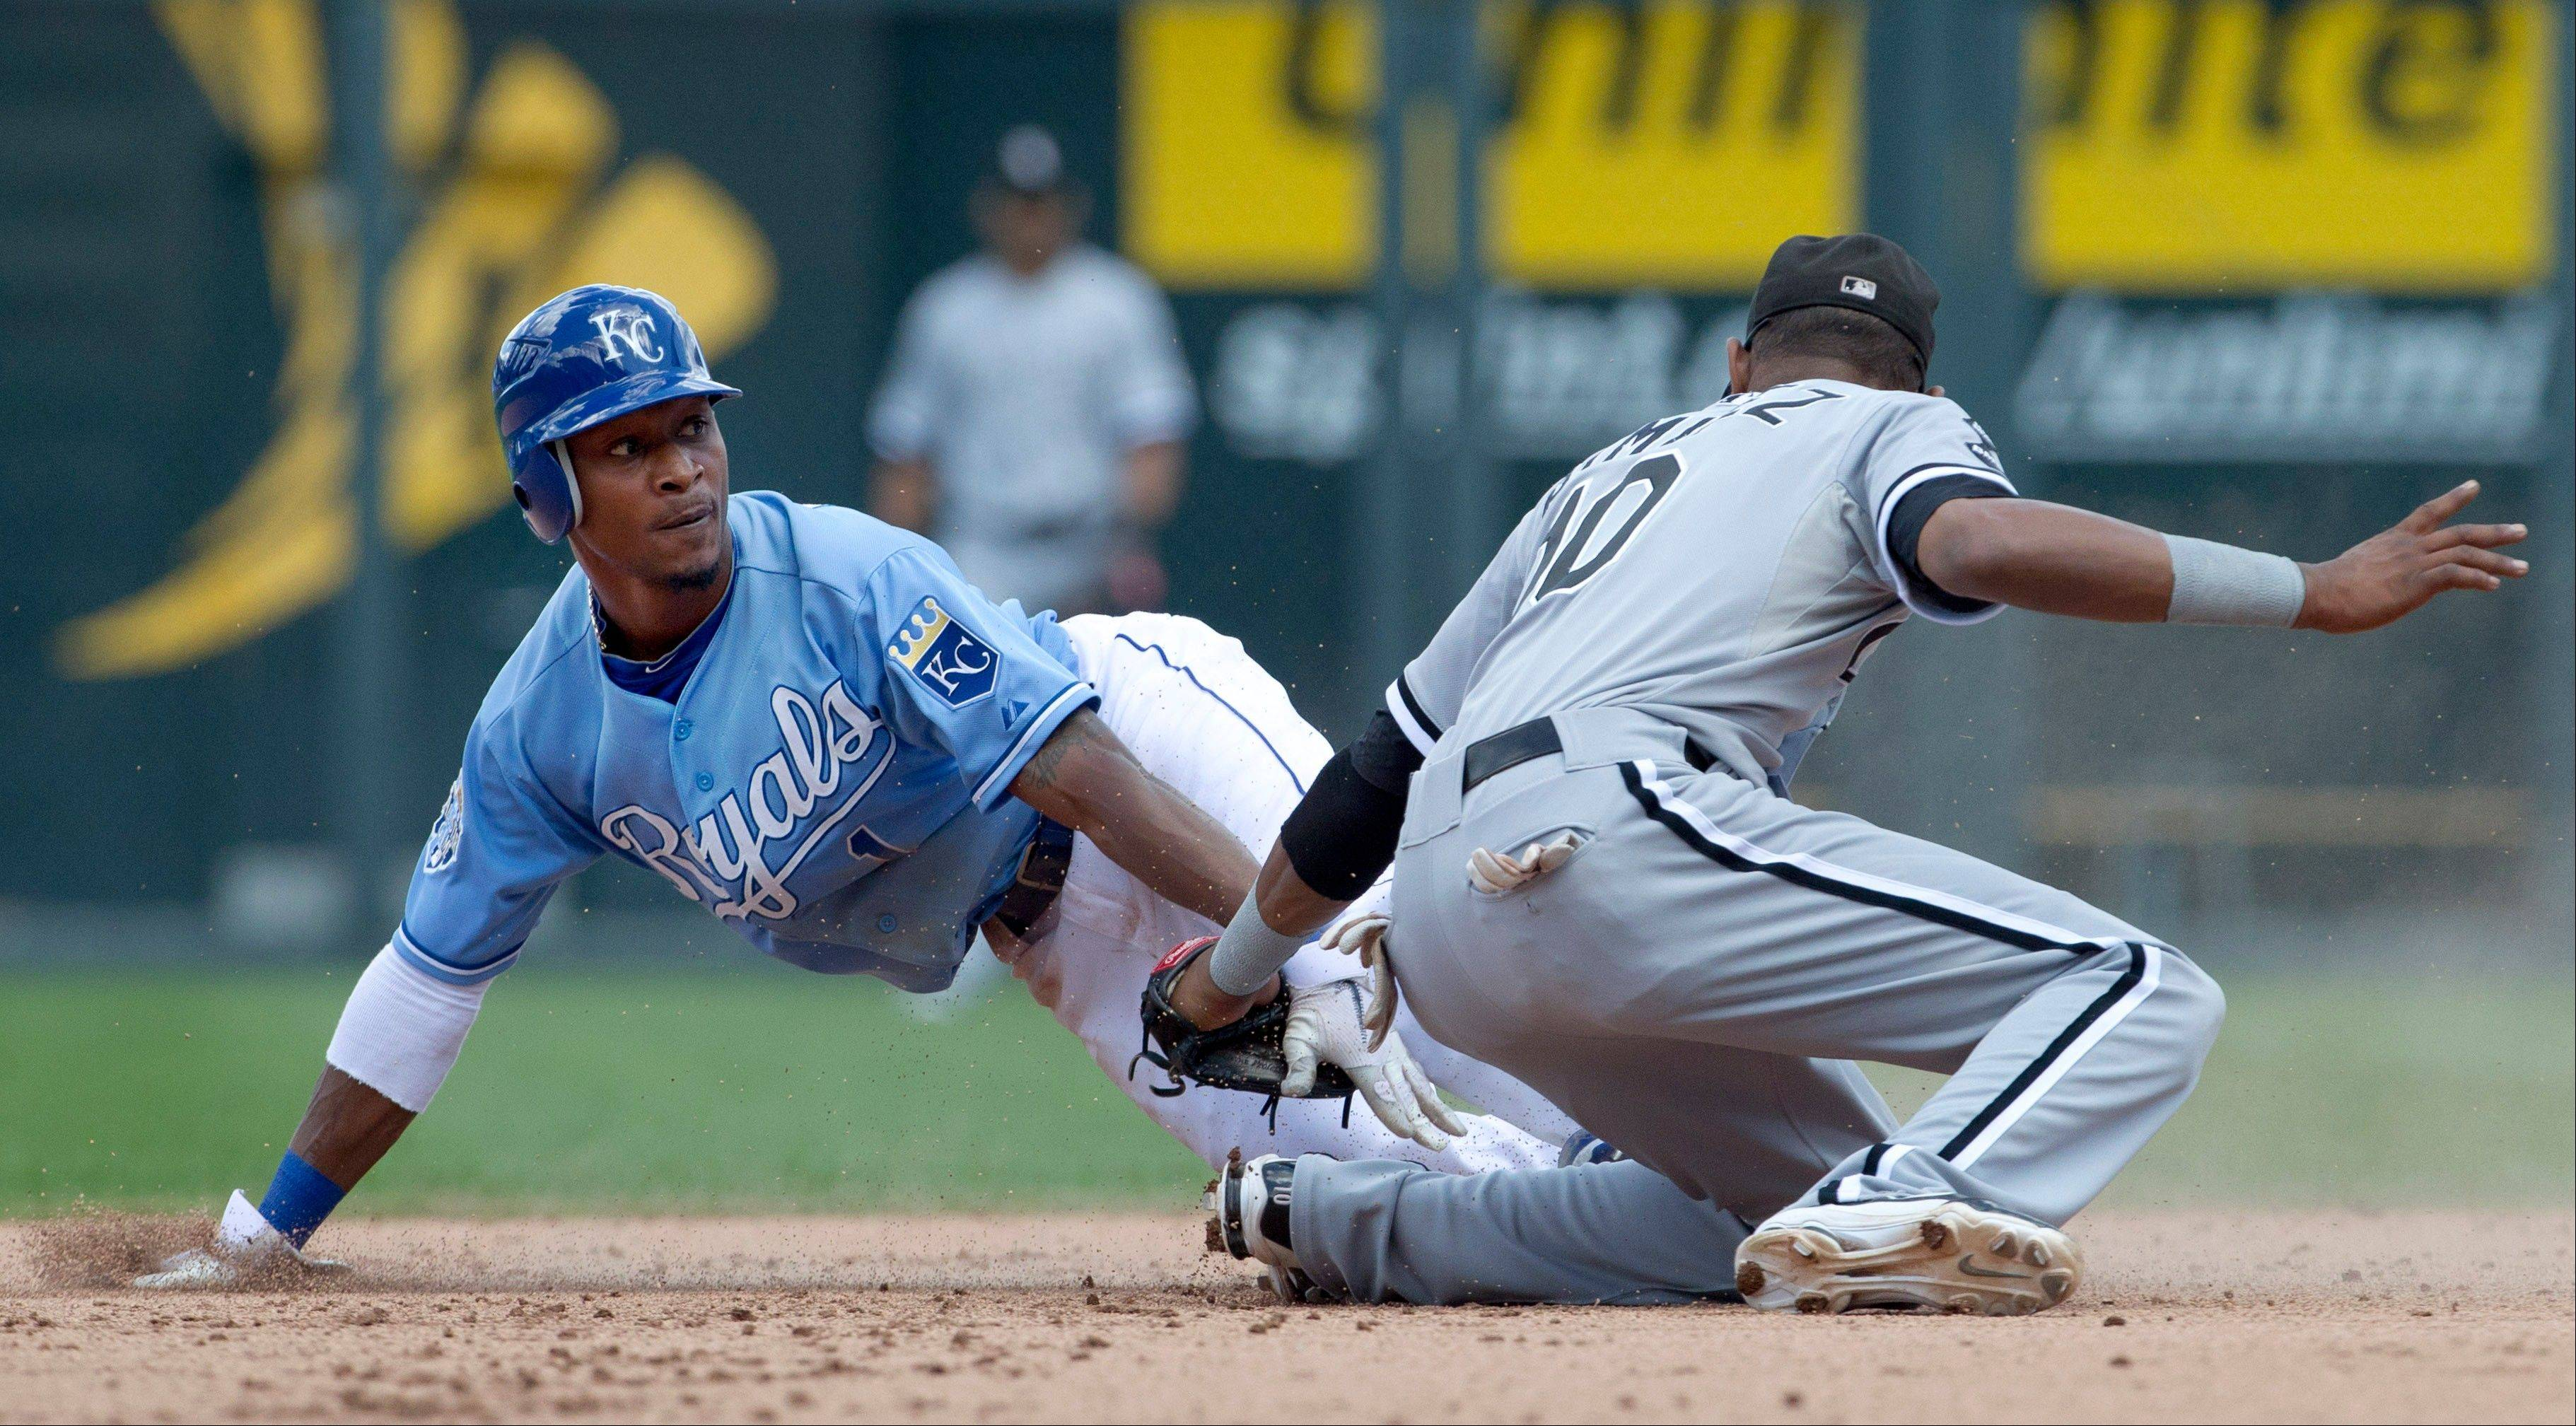 The Kansas City Royals' Jarrod Dyson beats the tag by White Sox shortstop Alexei Ramirez during Sunday's eighth inning in Kansas City.